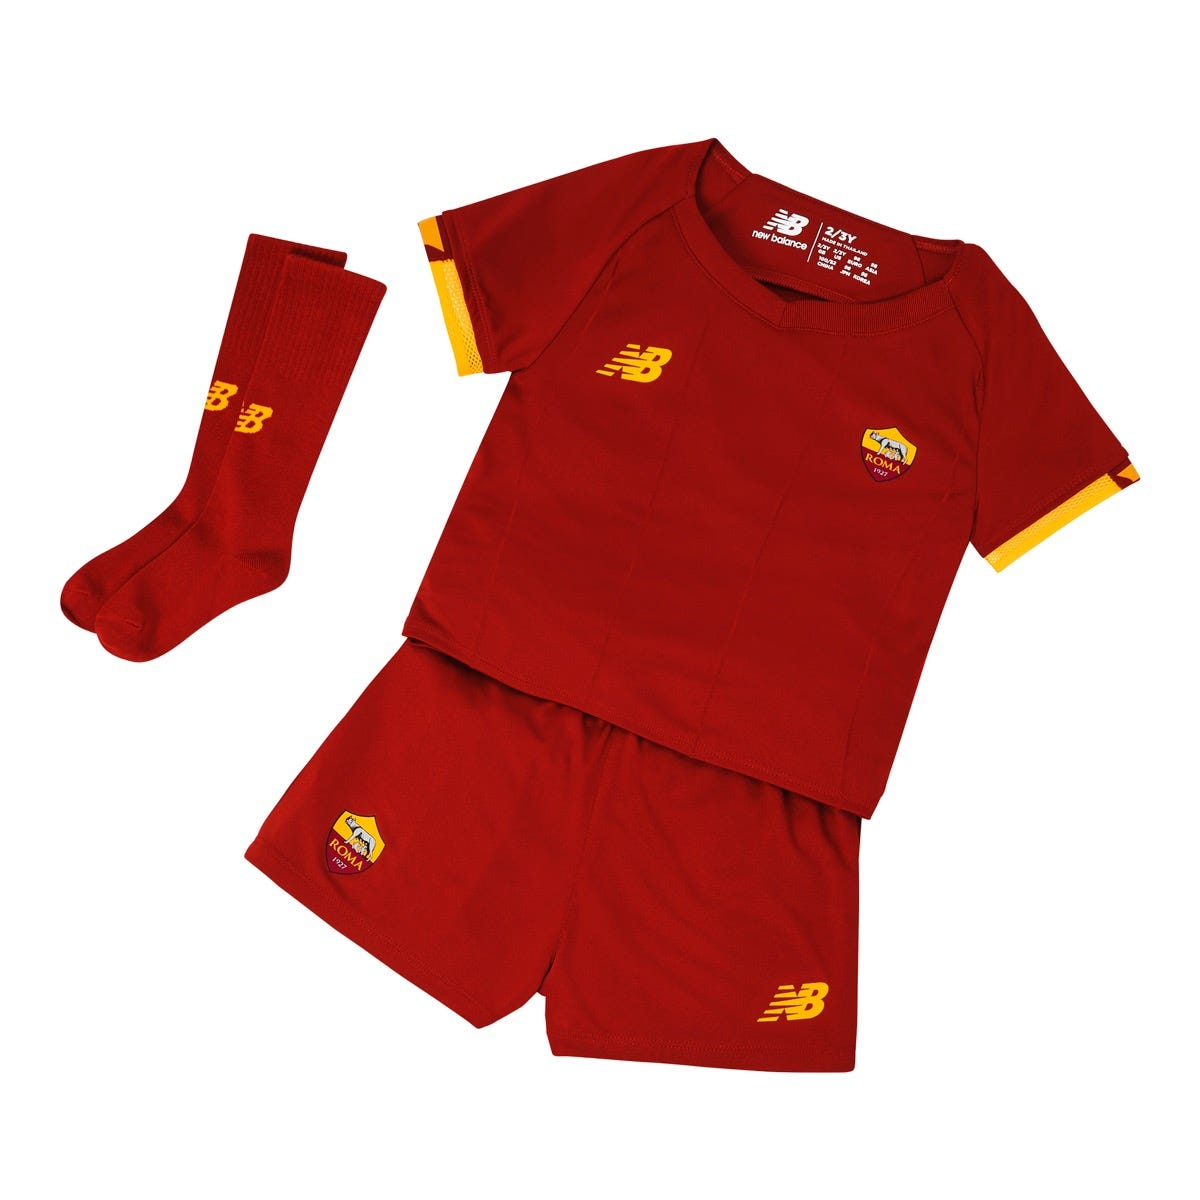 Kit Home Baby T-Shirt, Short and Socks 18months-7Years, 2021/22 w/t free Face Mask